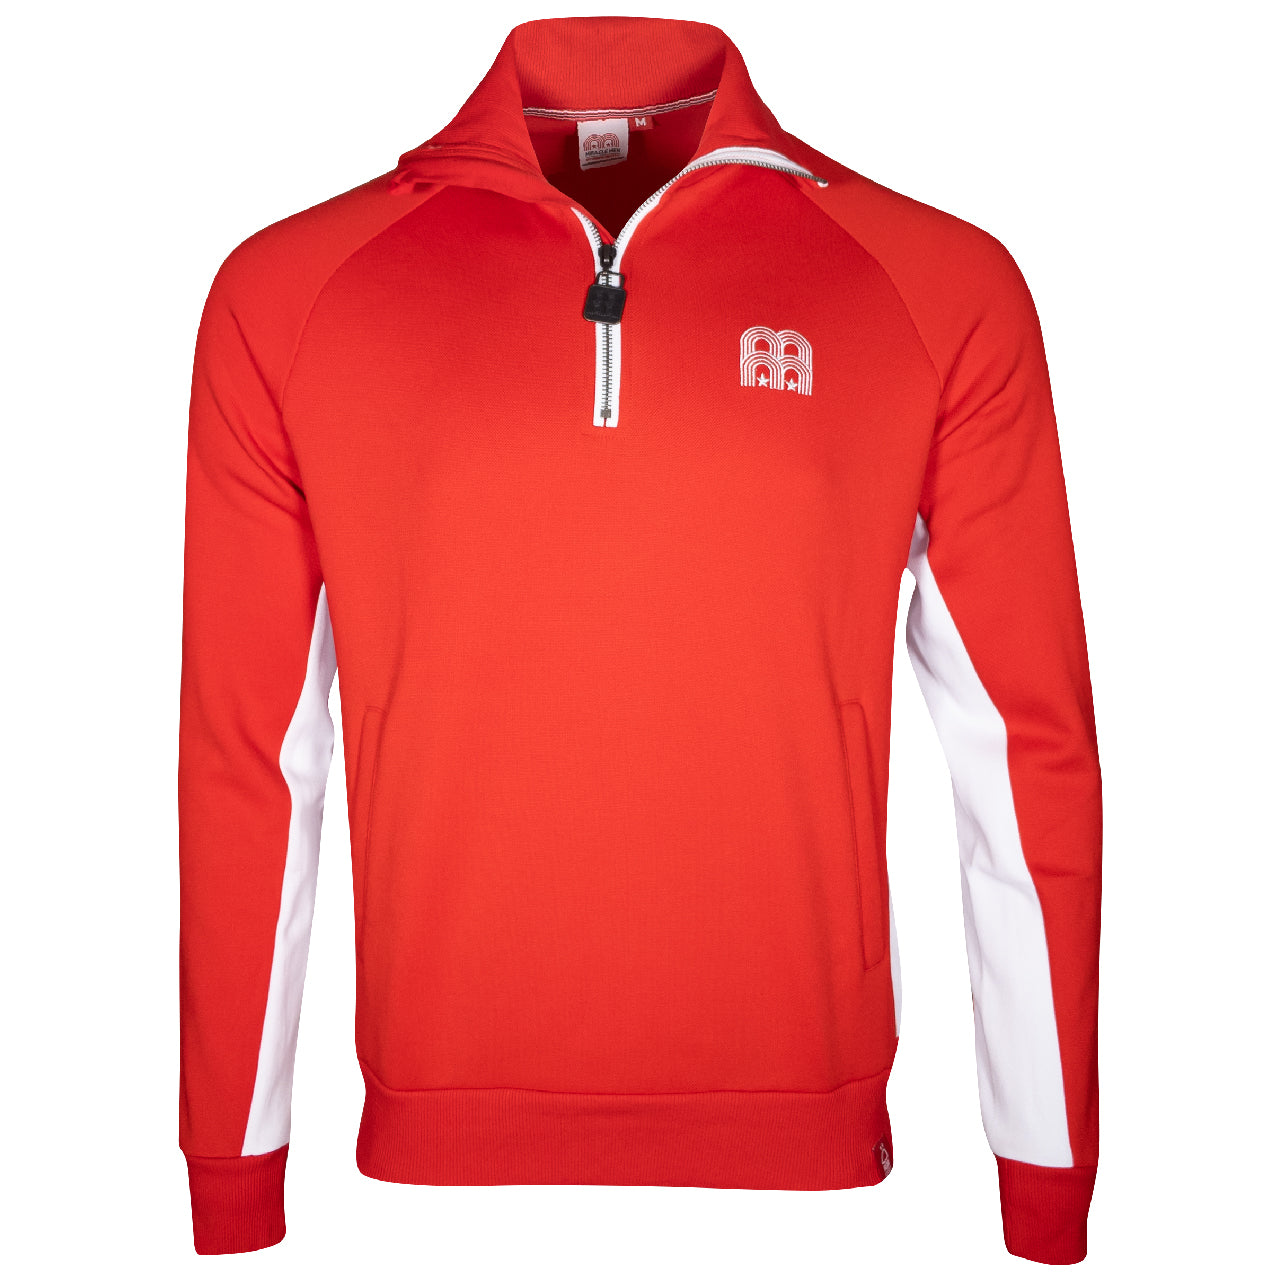 NFFC Mens Red 1/4 Zip Funnel Neck